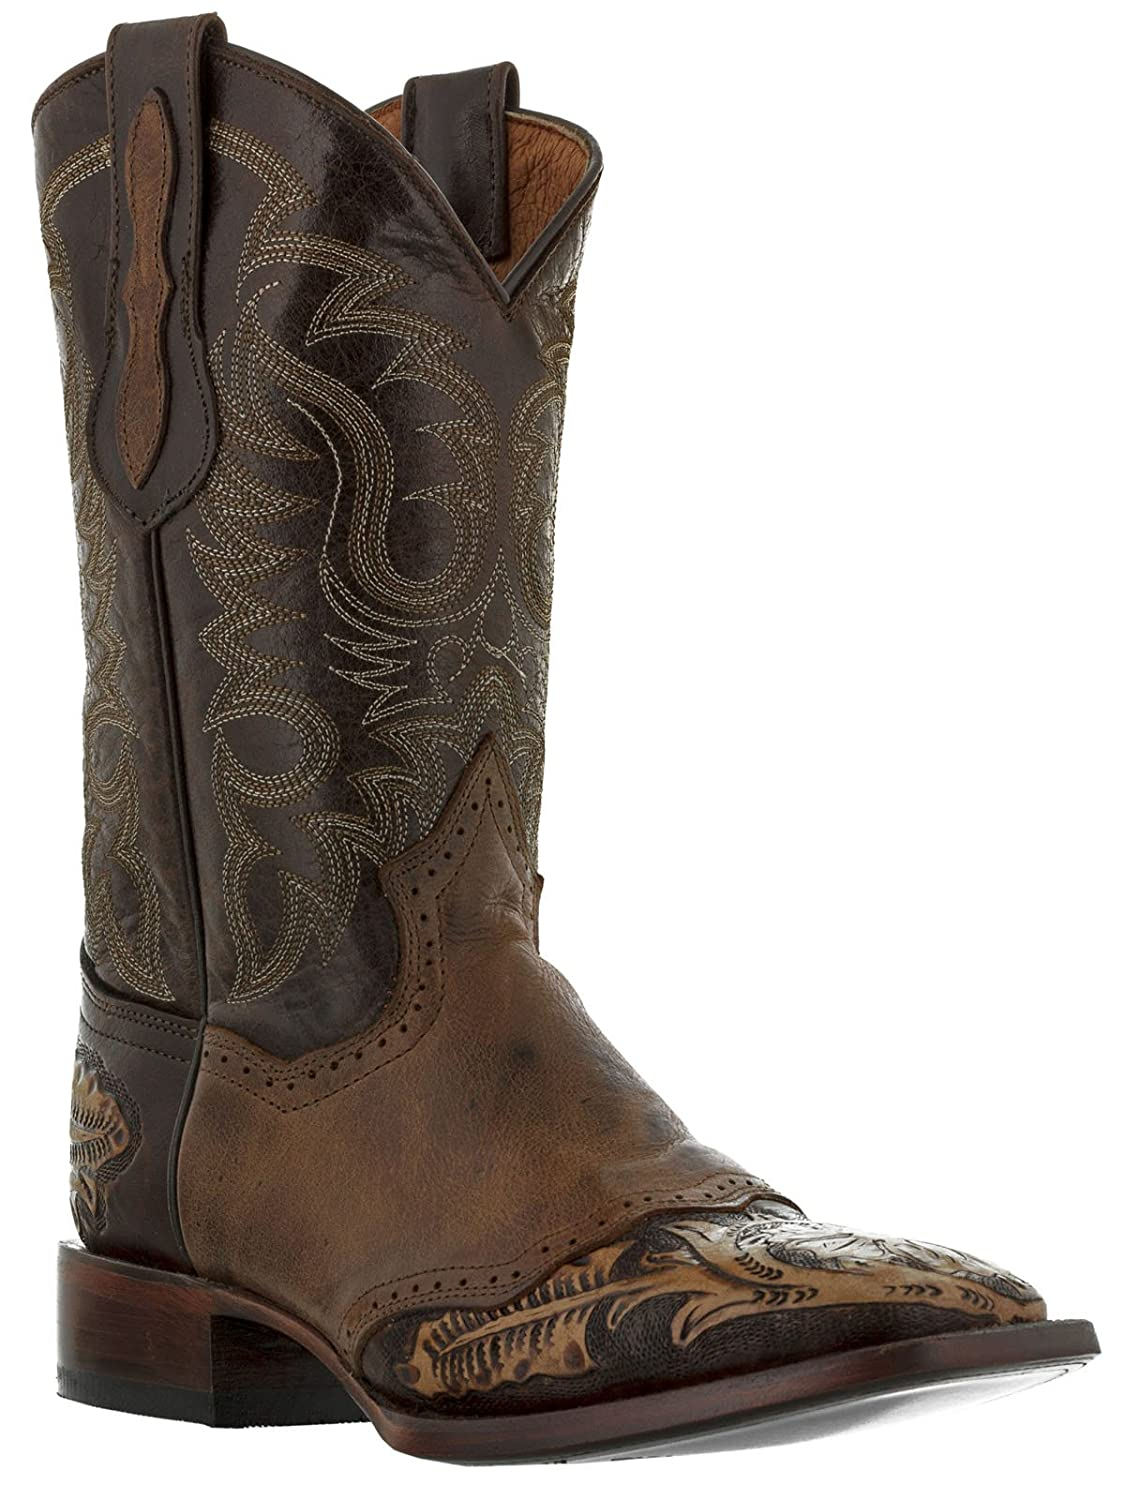 El Presidente - Men's Brown Hand Tooled Leather Western Cowboy Boots Square Toe